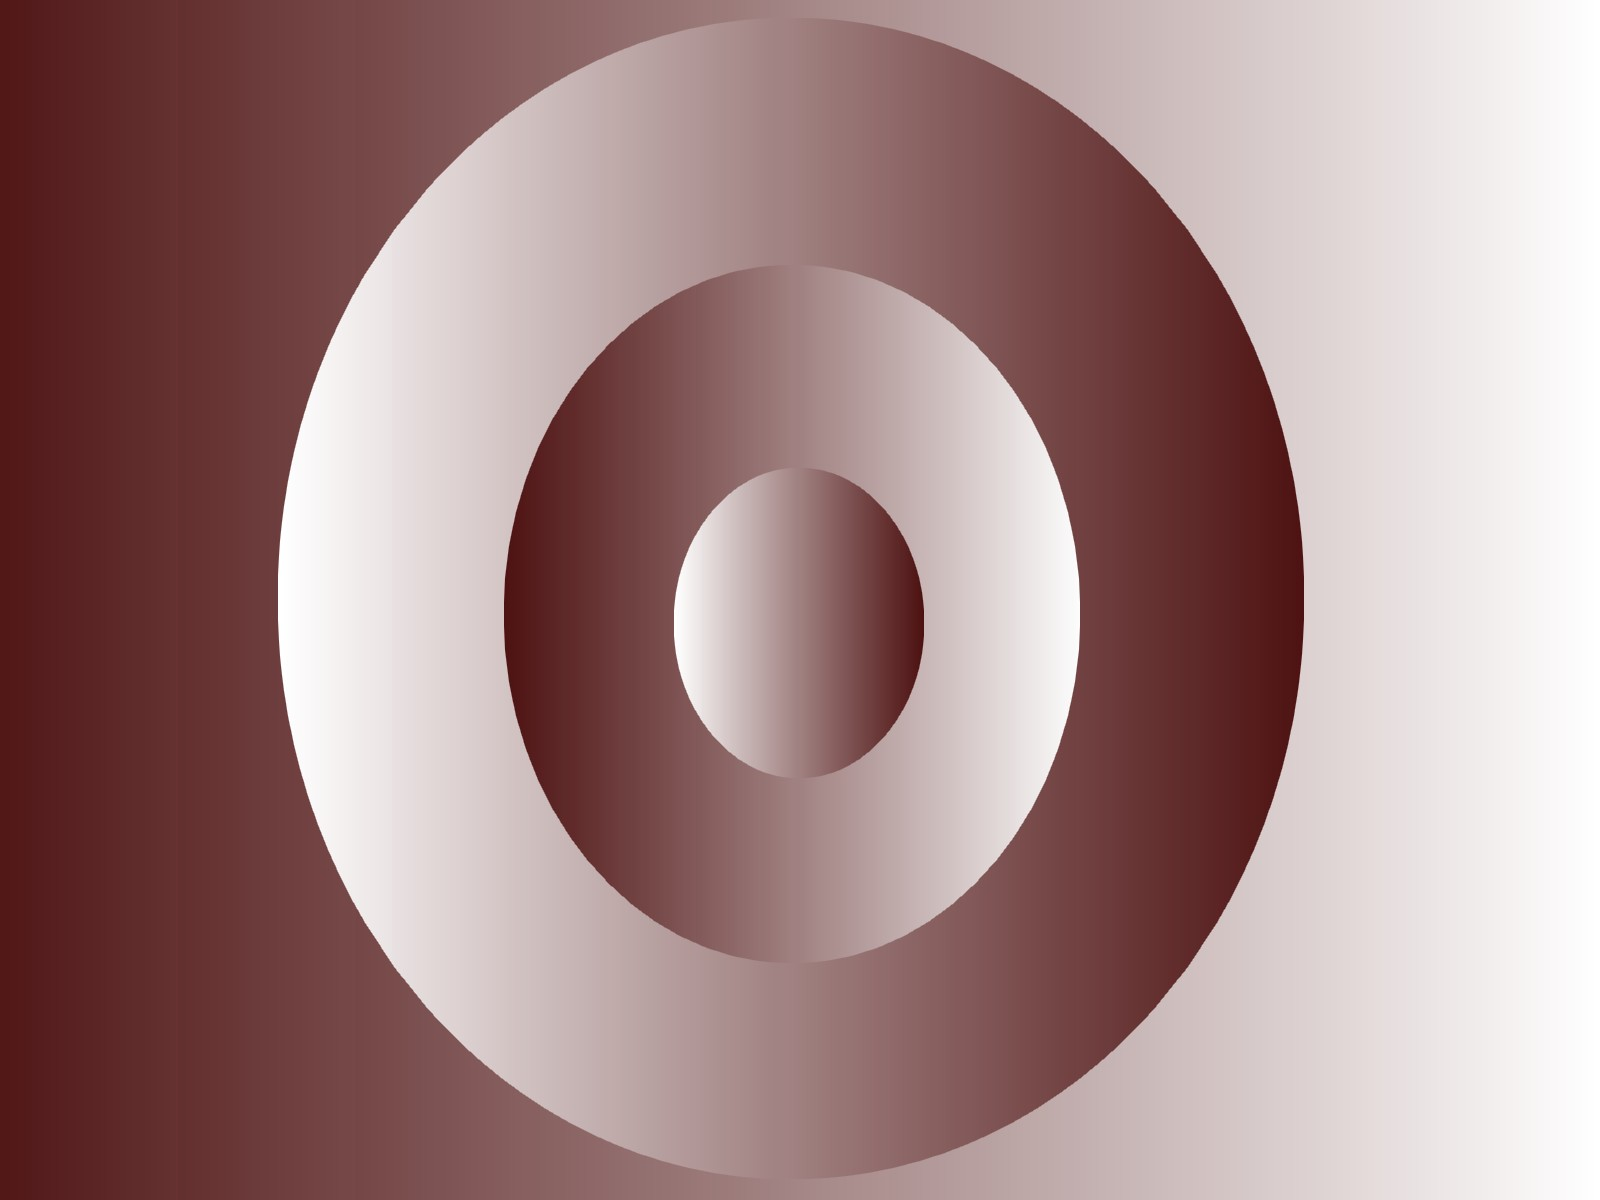 jer-alternate-circle-gradients1